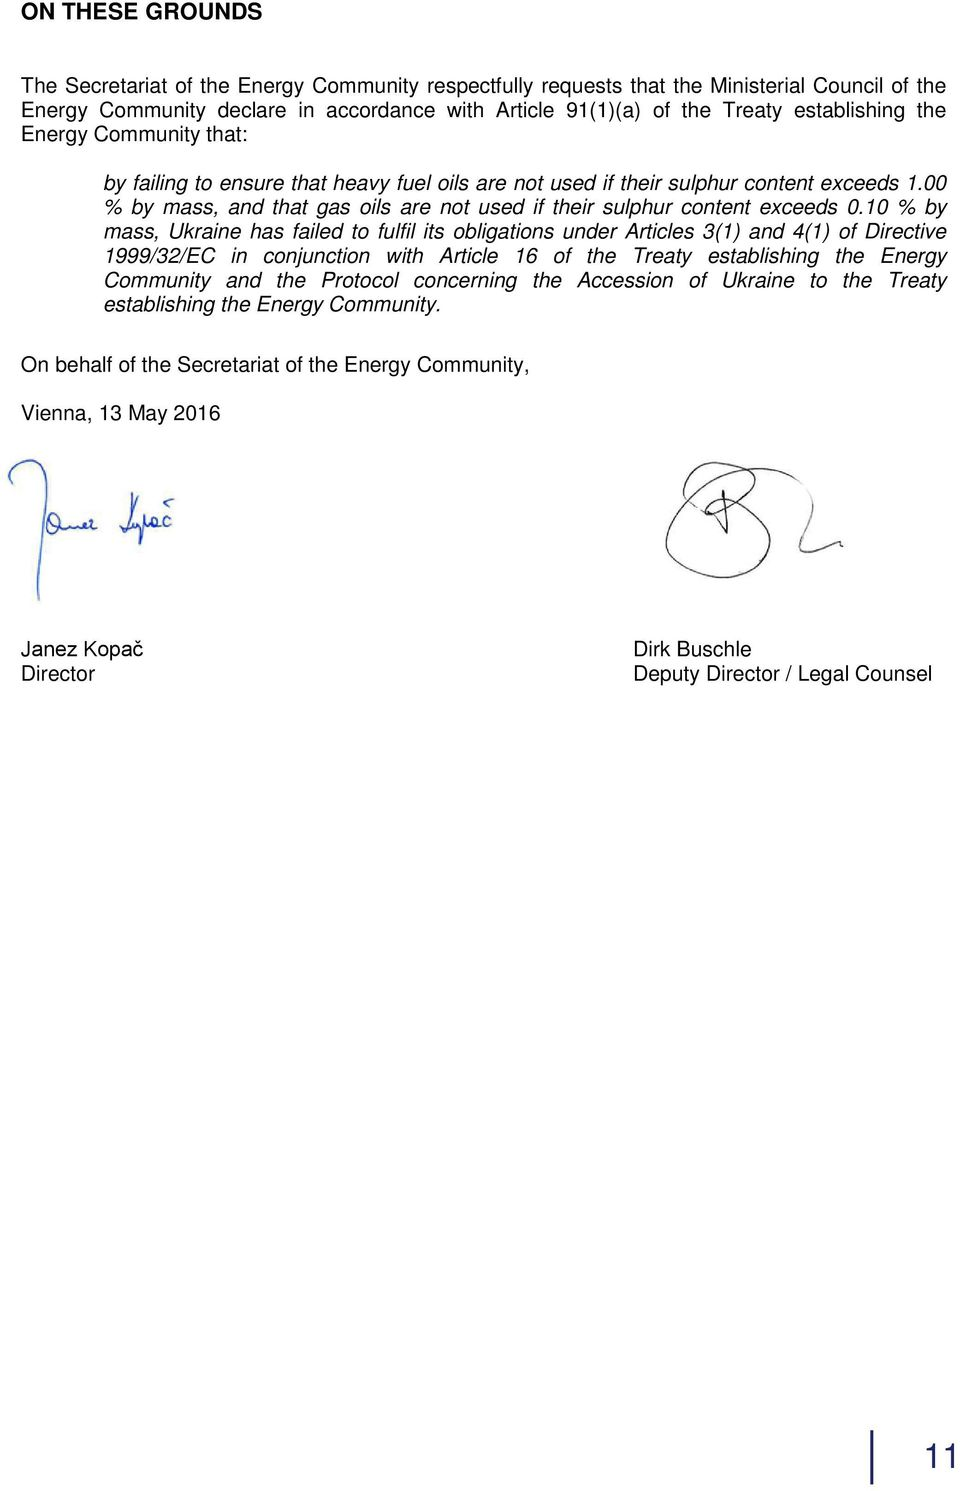 00 % by mass, and that gas oils are not used if their sulphur content exceeds 0.